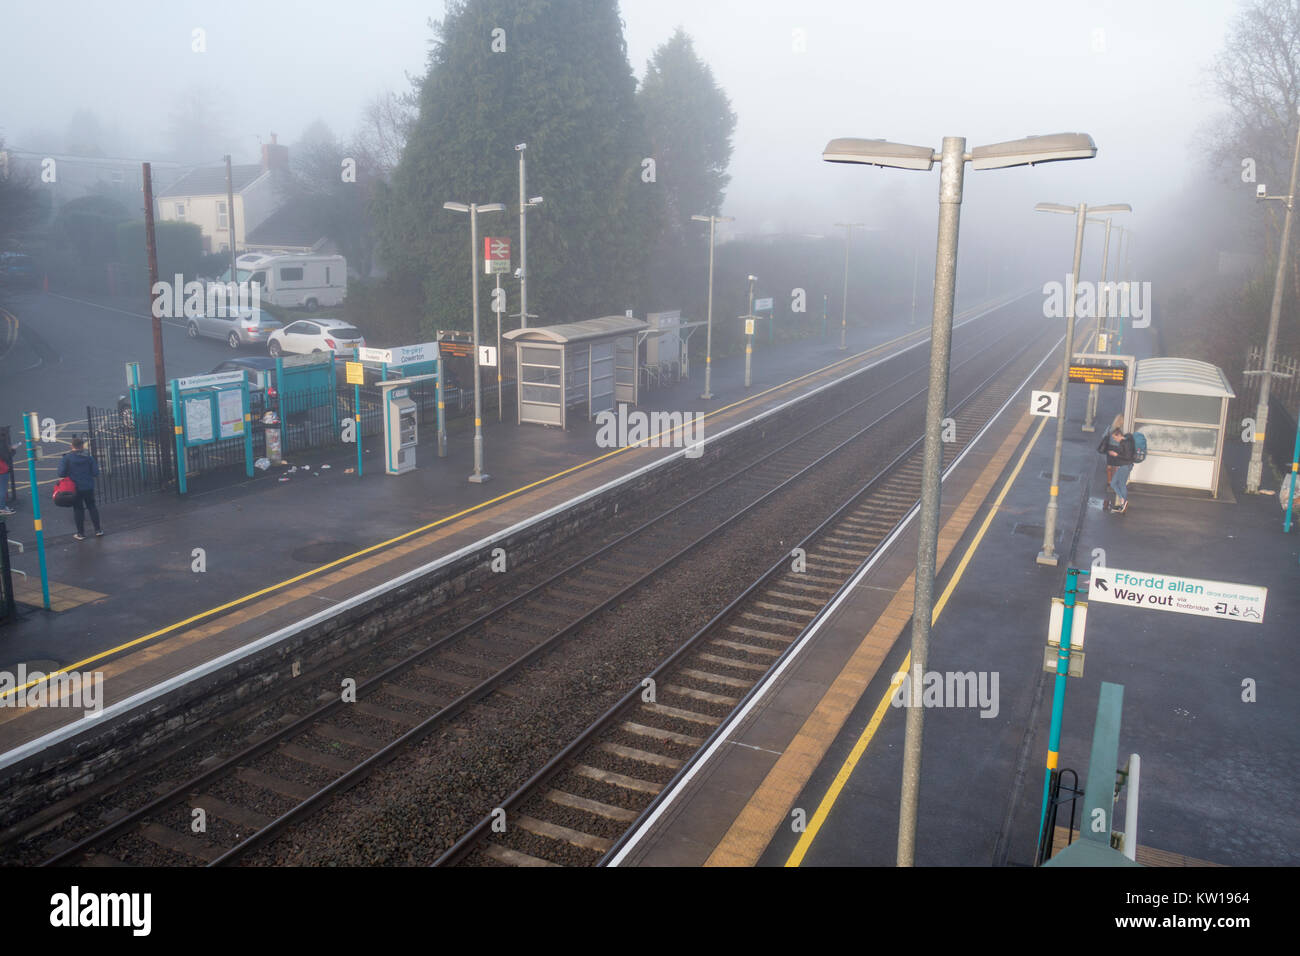 Gowerton train station on a misty morning. - Stock Image